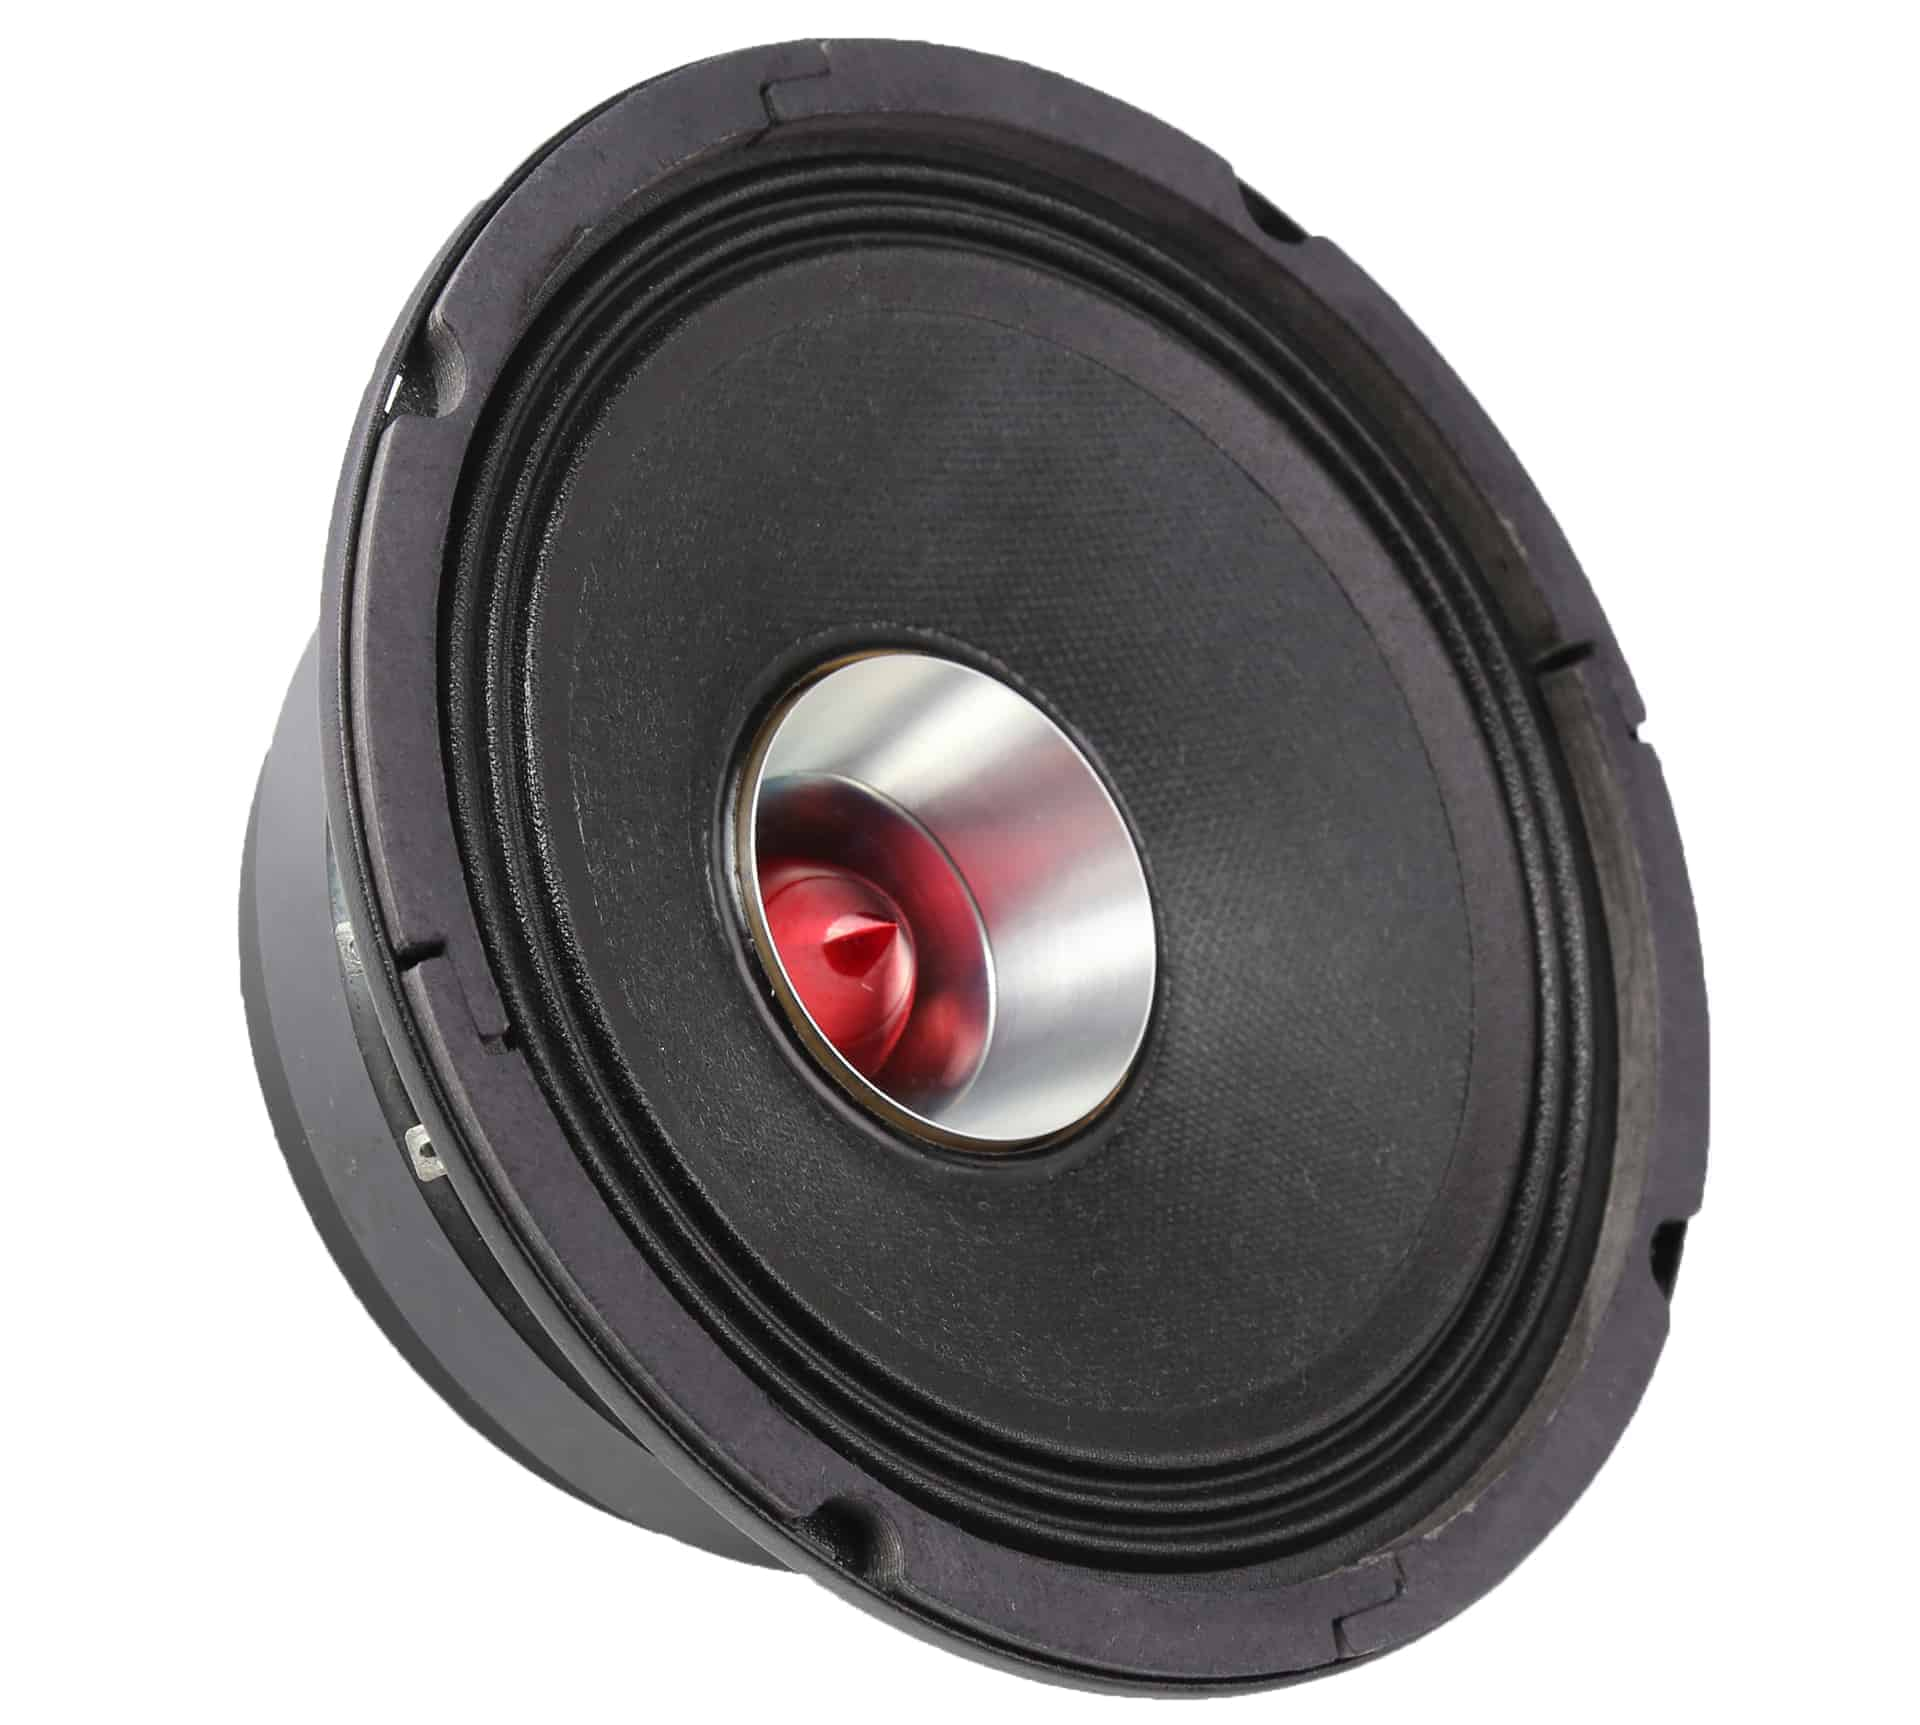 COXC SERIES |  PROFESSIONAL COAXIAL SPEAKER (SHALLOW)